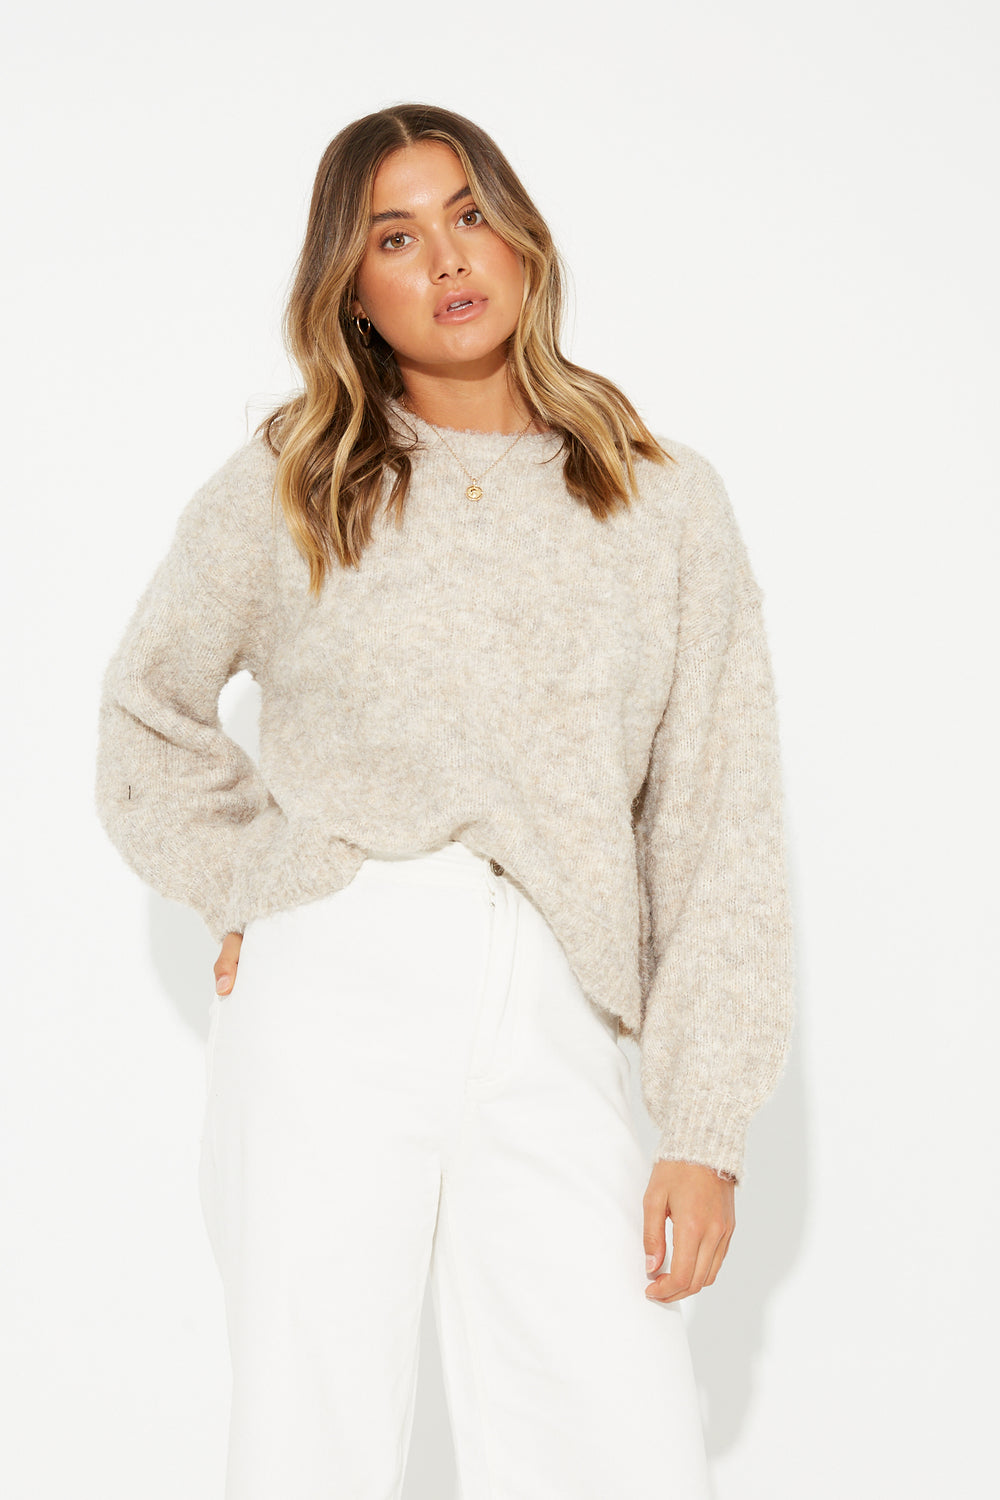 Charli Relaxed Knit Oatmeal